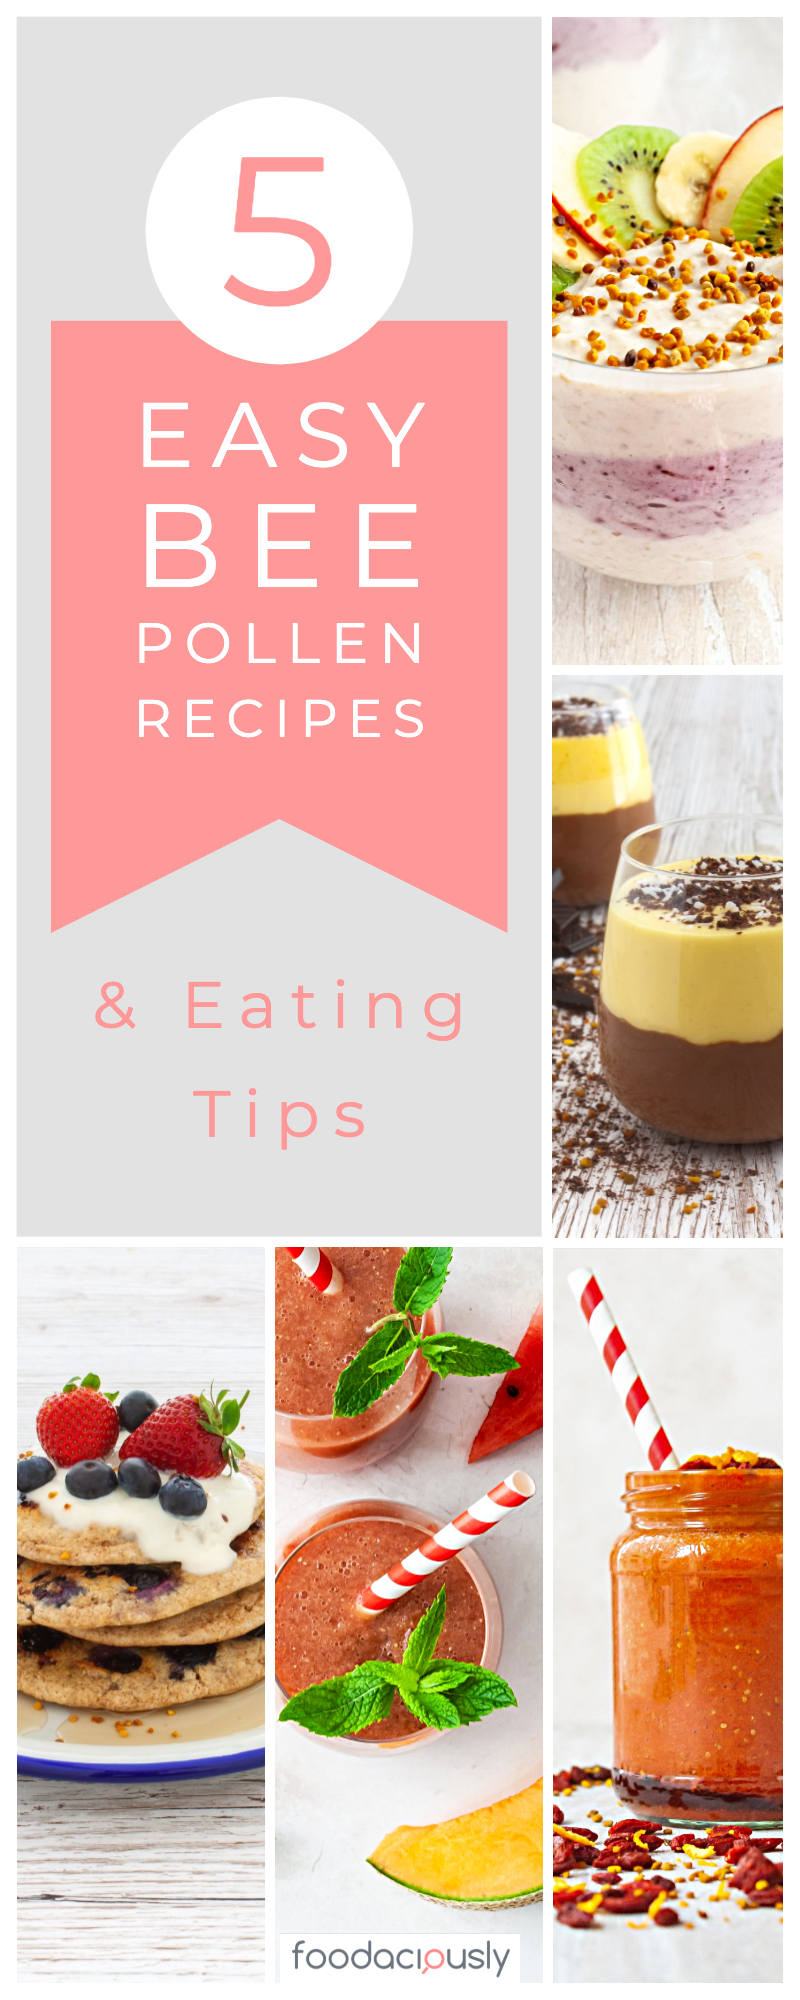 5 Easy Bee Pollen Recipes